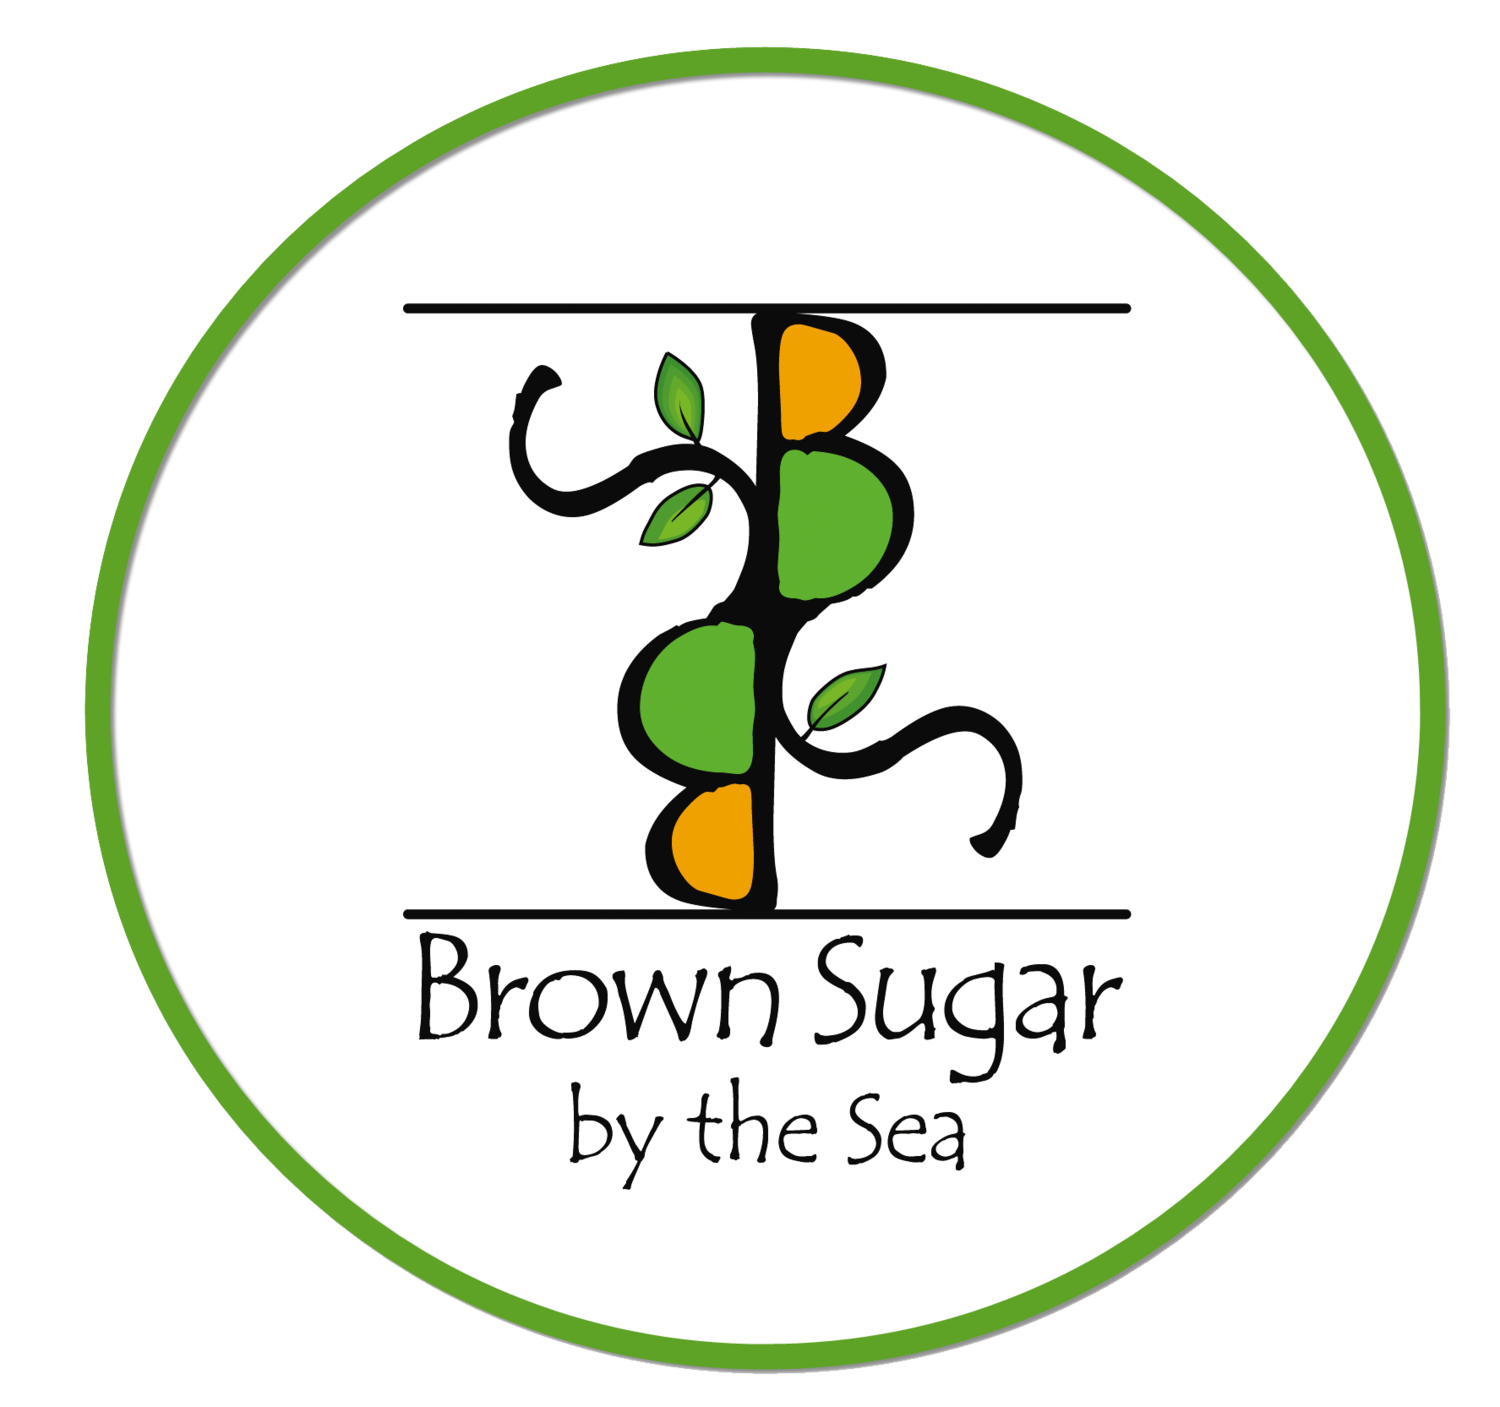 Brown Sugar by the Sea Restaurant - Newburyport | Brown Sugar by the Sea Thai Cuisine